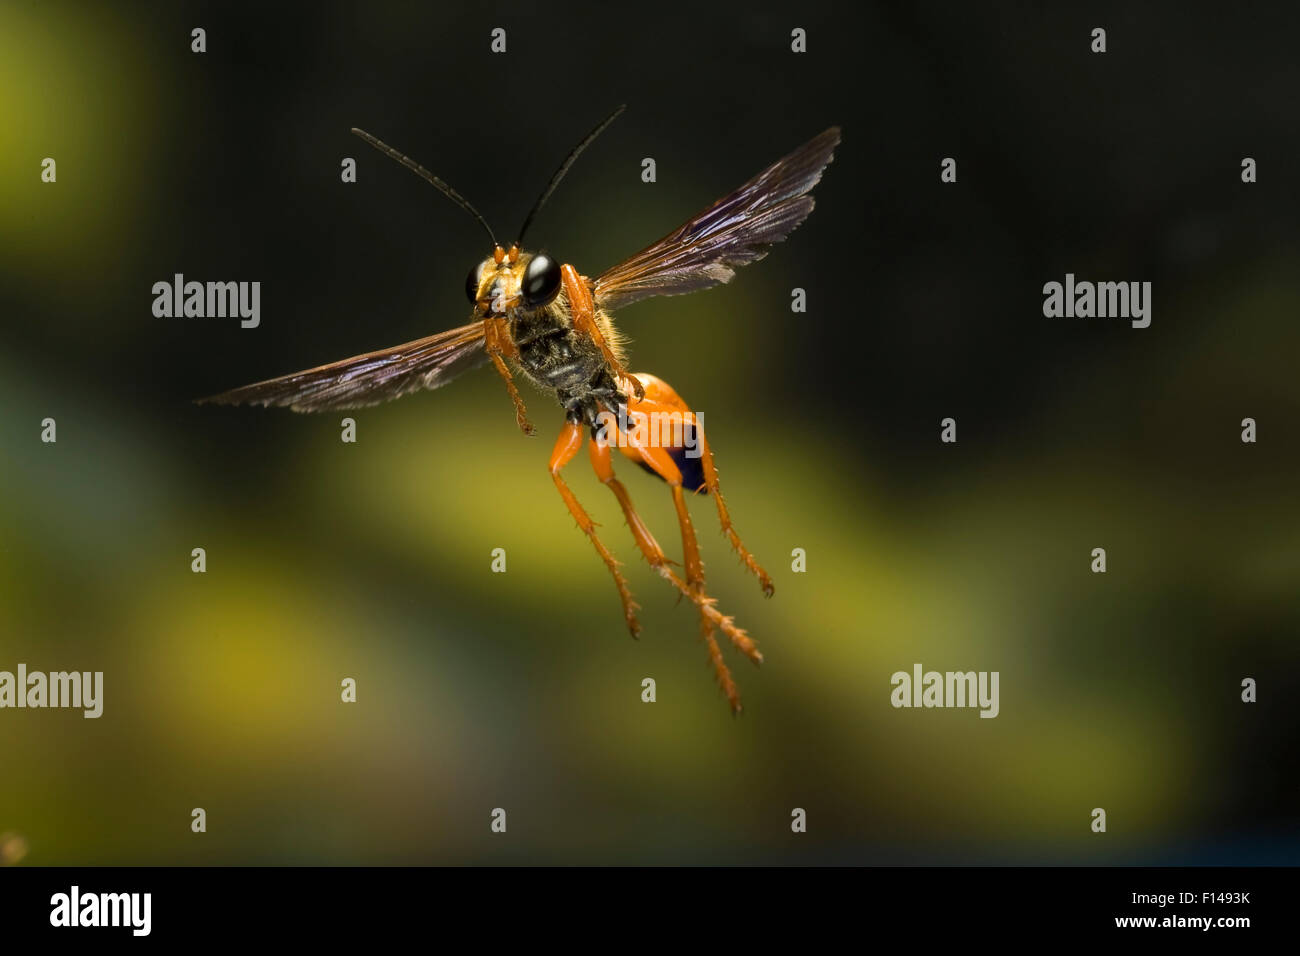 Male Great golden digger wasp (Sphex ichneumoneus) in flight, South Texas, USA, September. Stock Photo